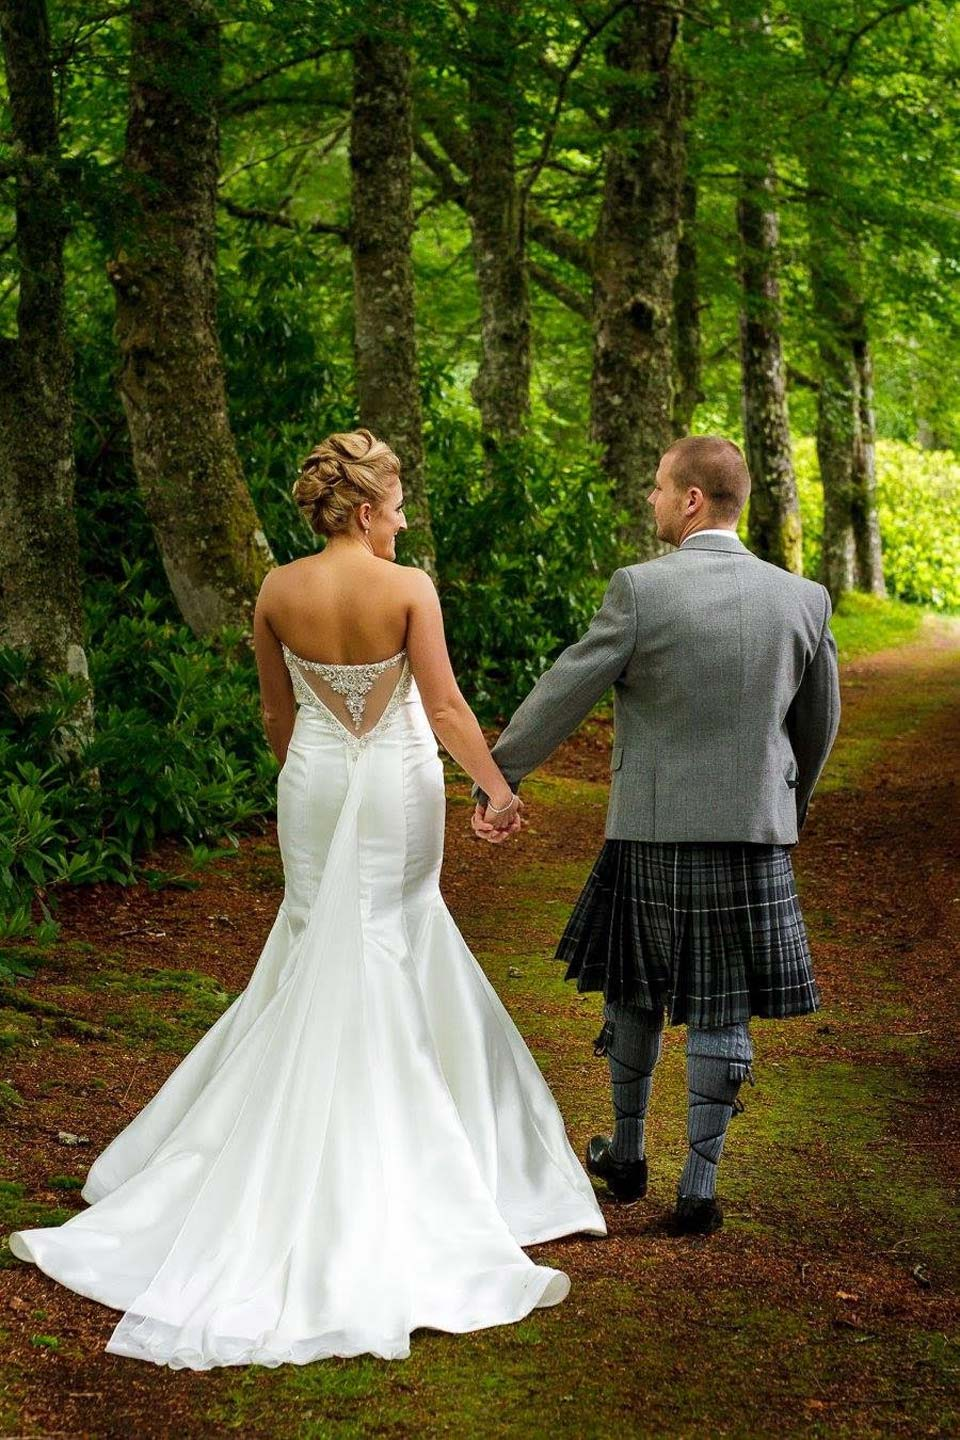 Glentrium-Estate-Wedding-Venue-Scotland-Jo-and-Greg1.jpg